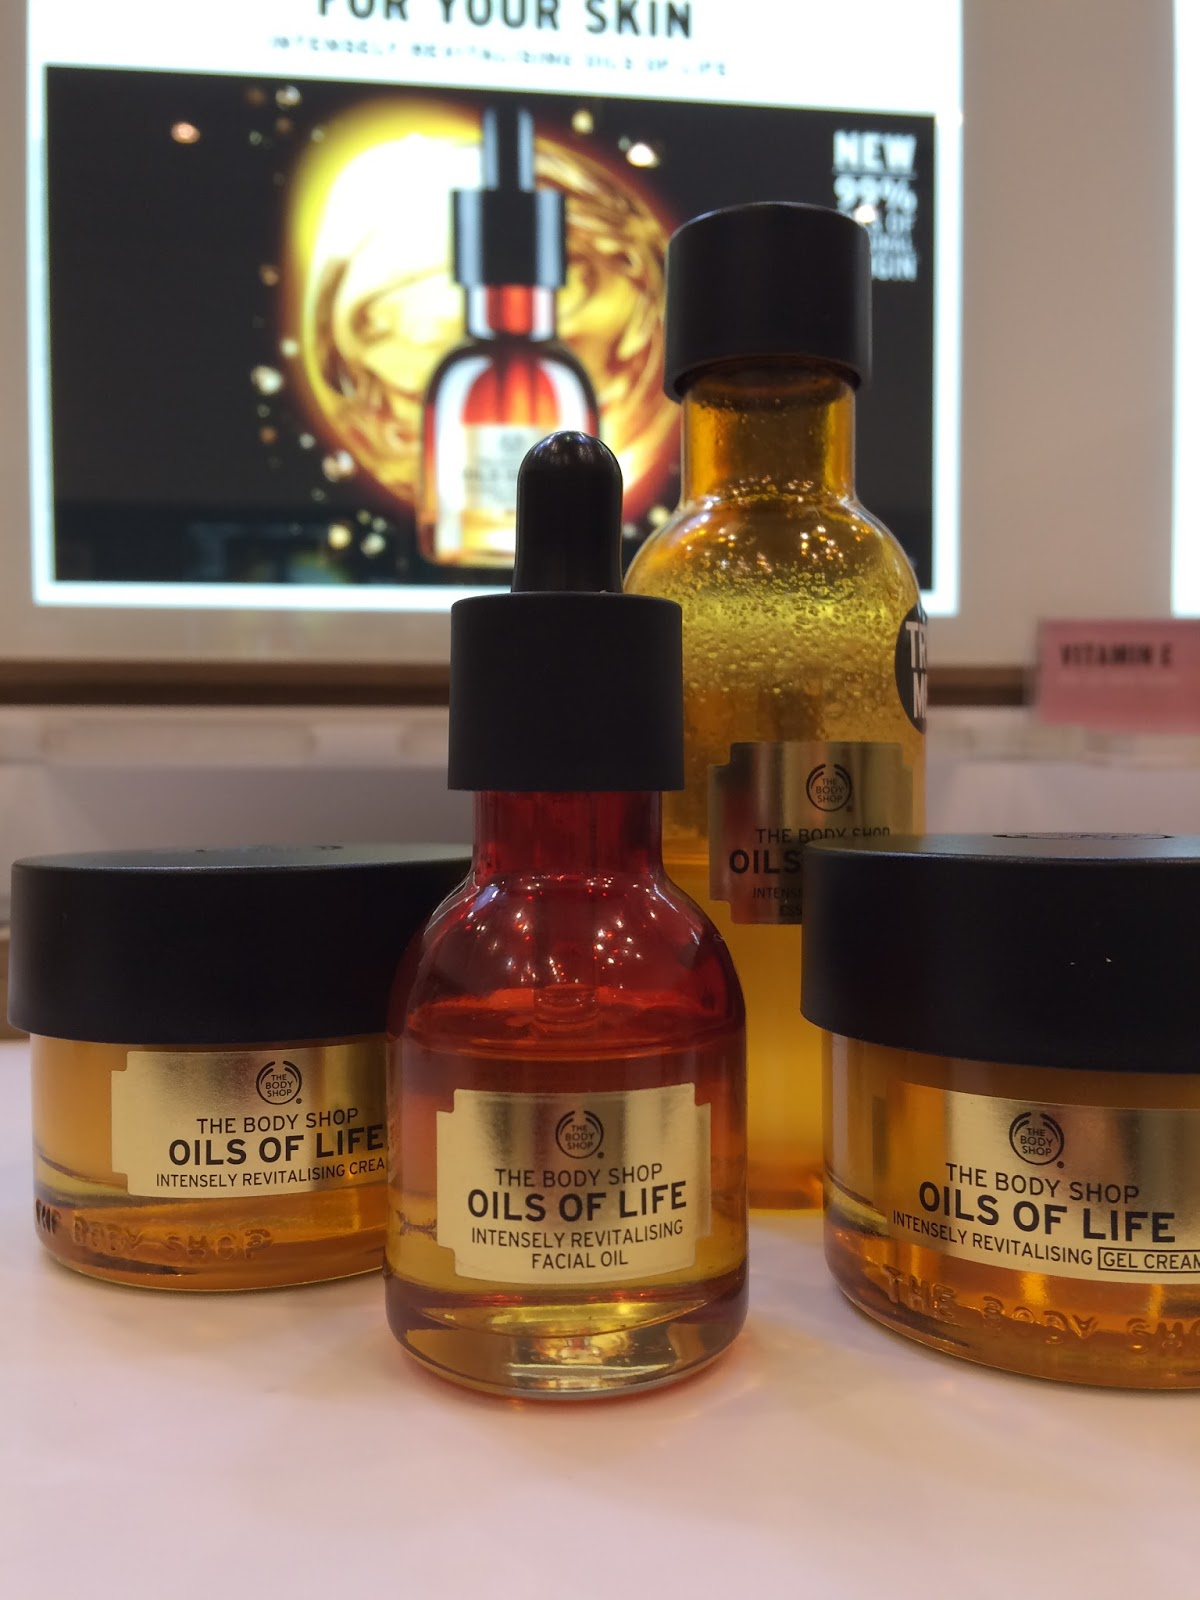 The Body Shop Oils of Life review